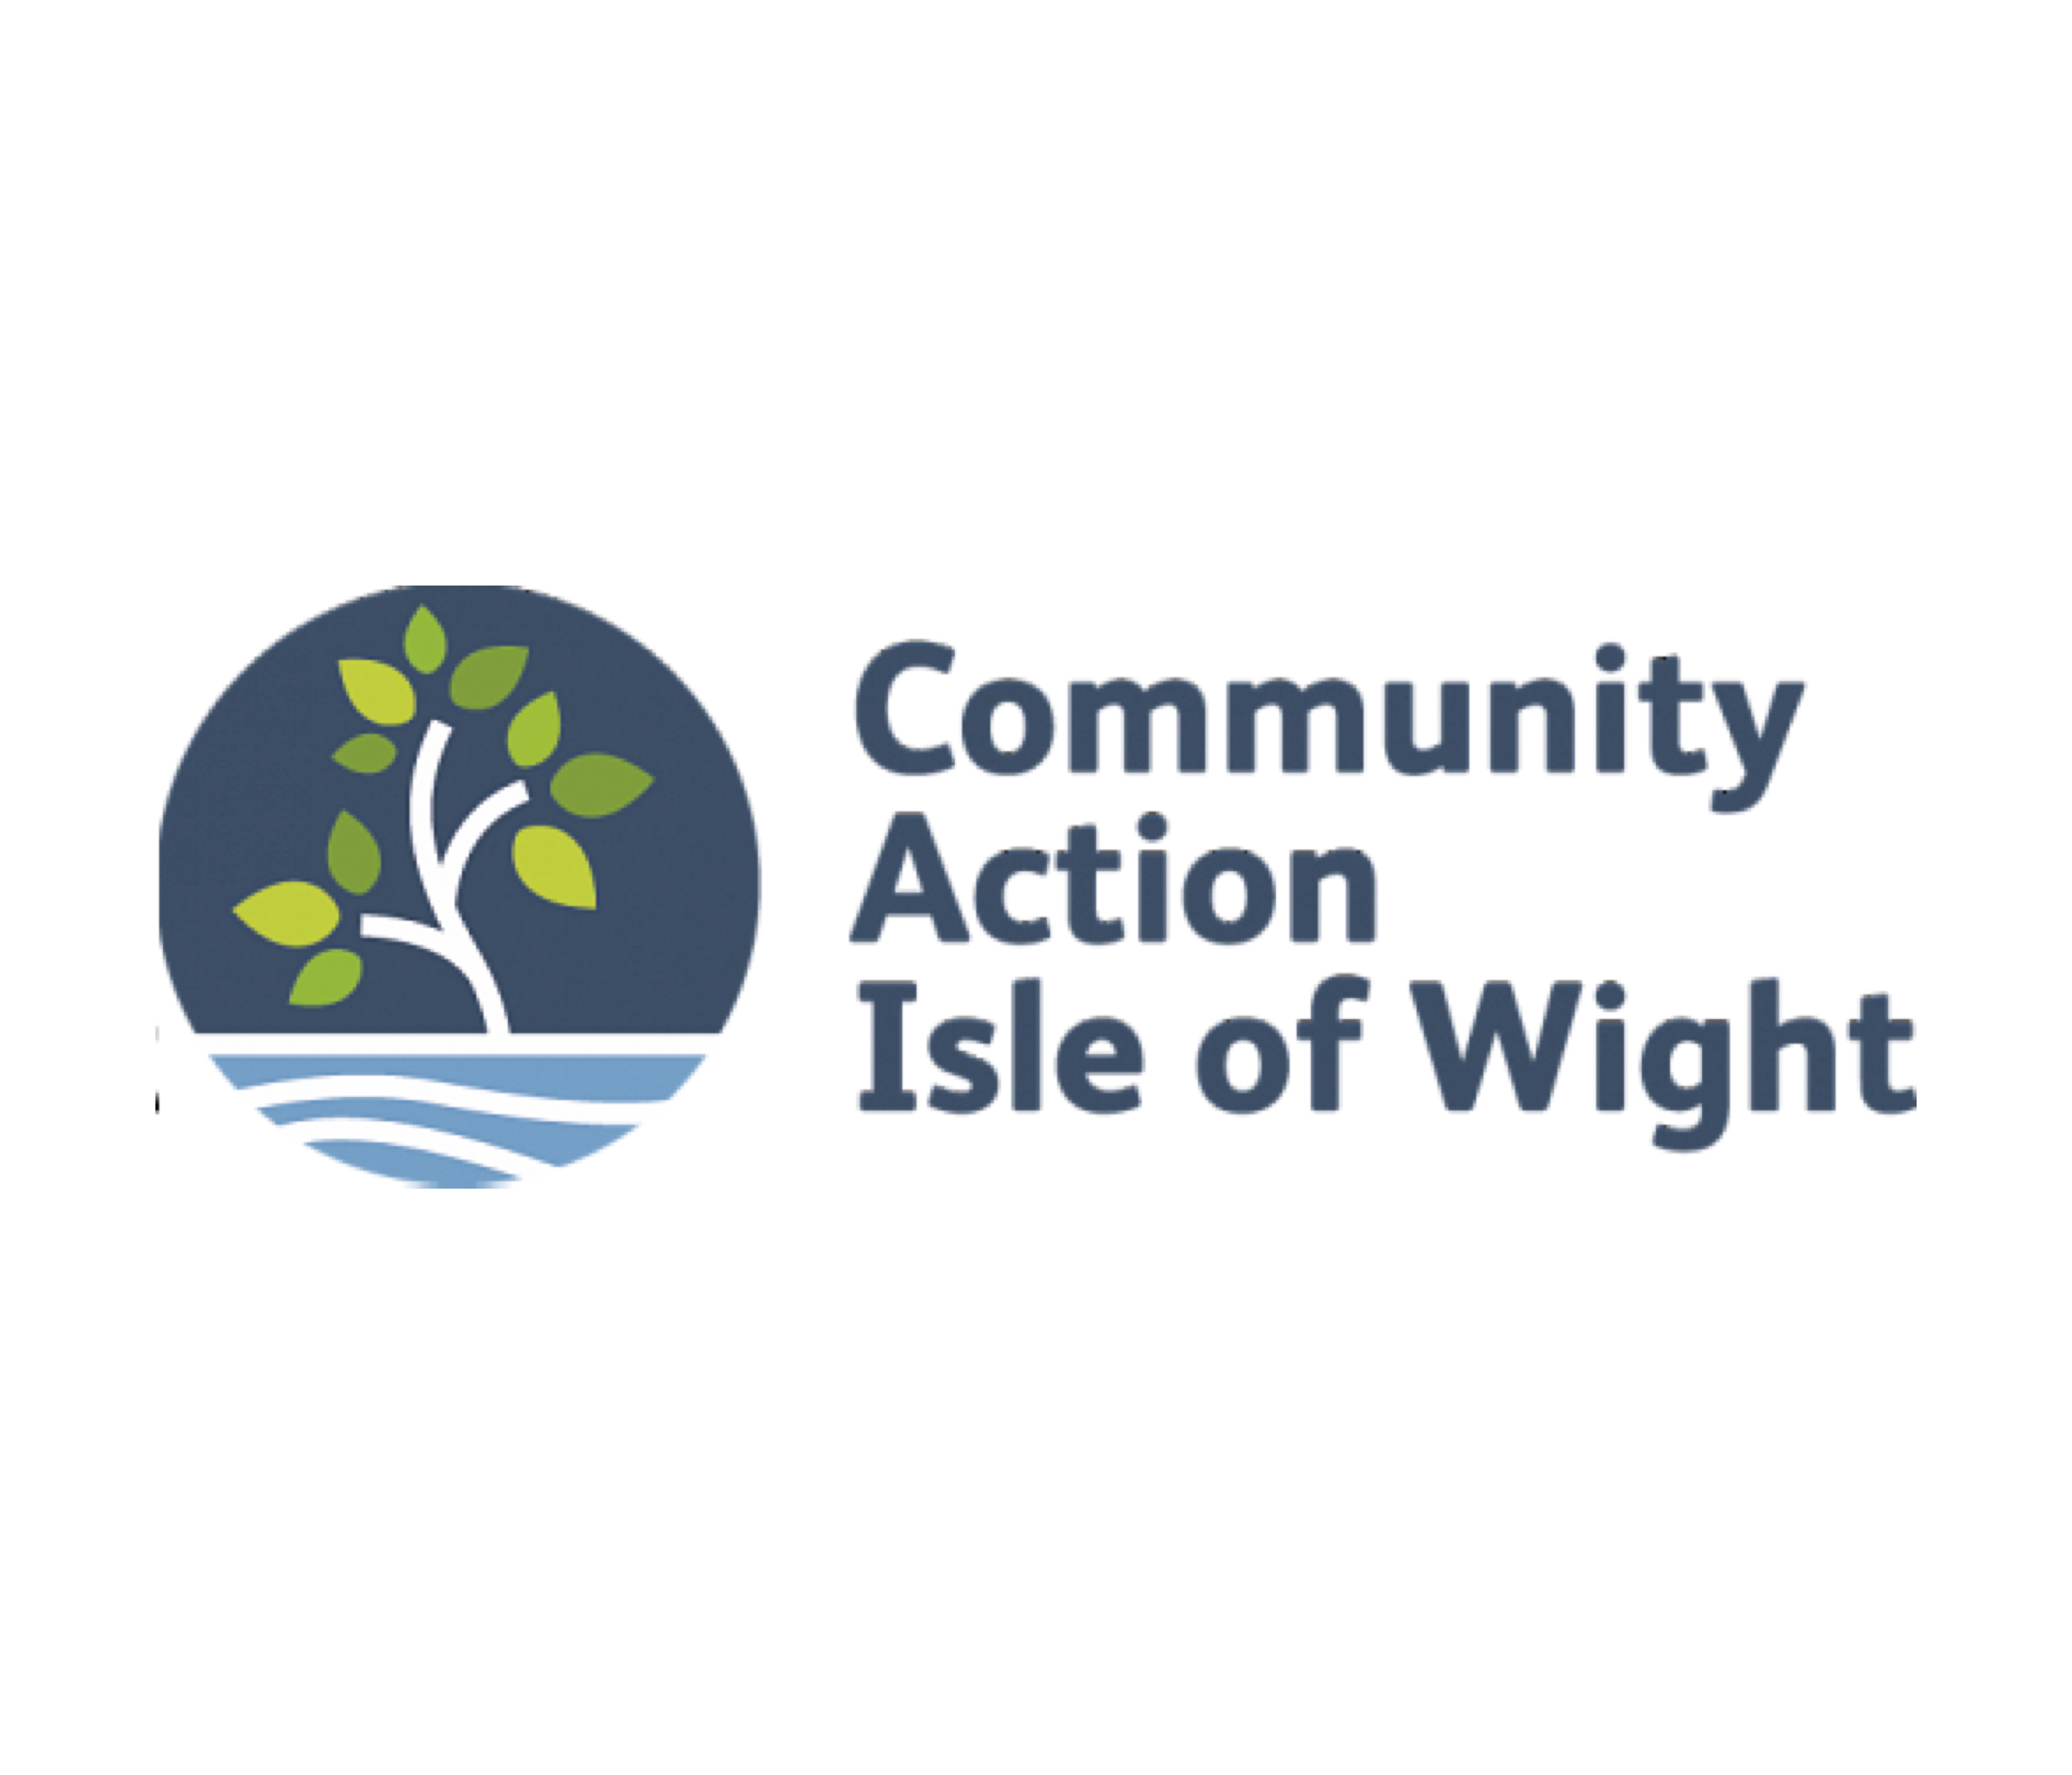 18 community action iow.jpg